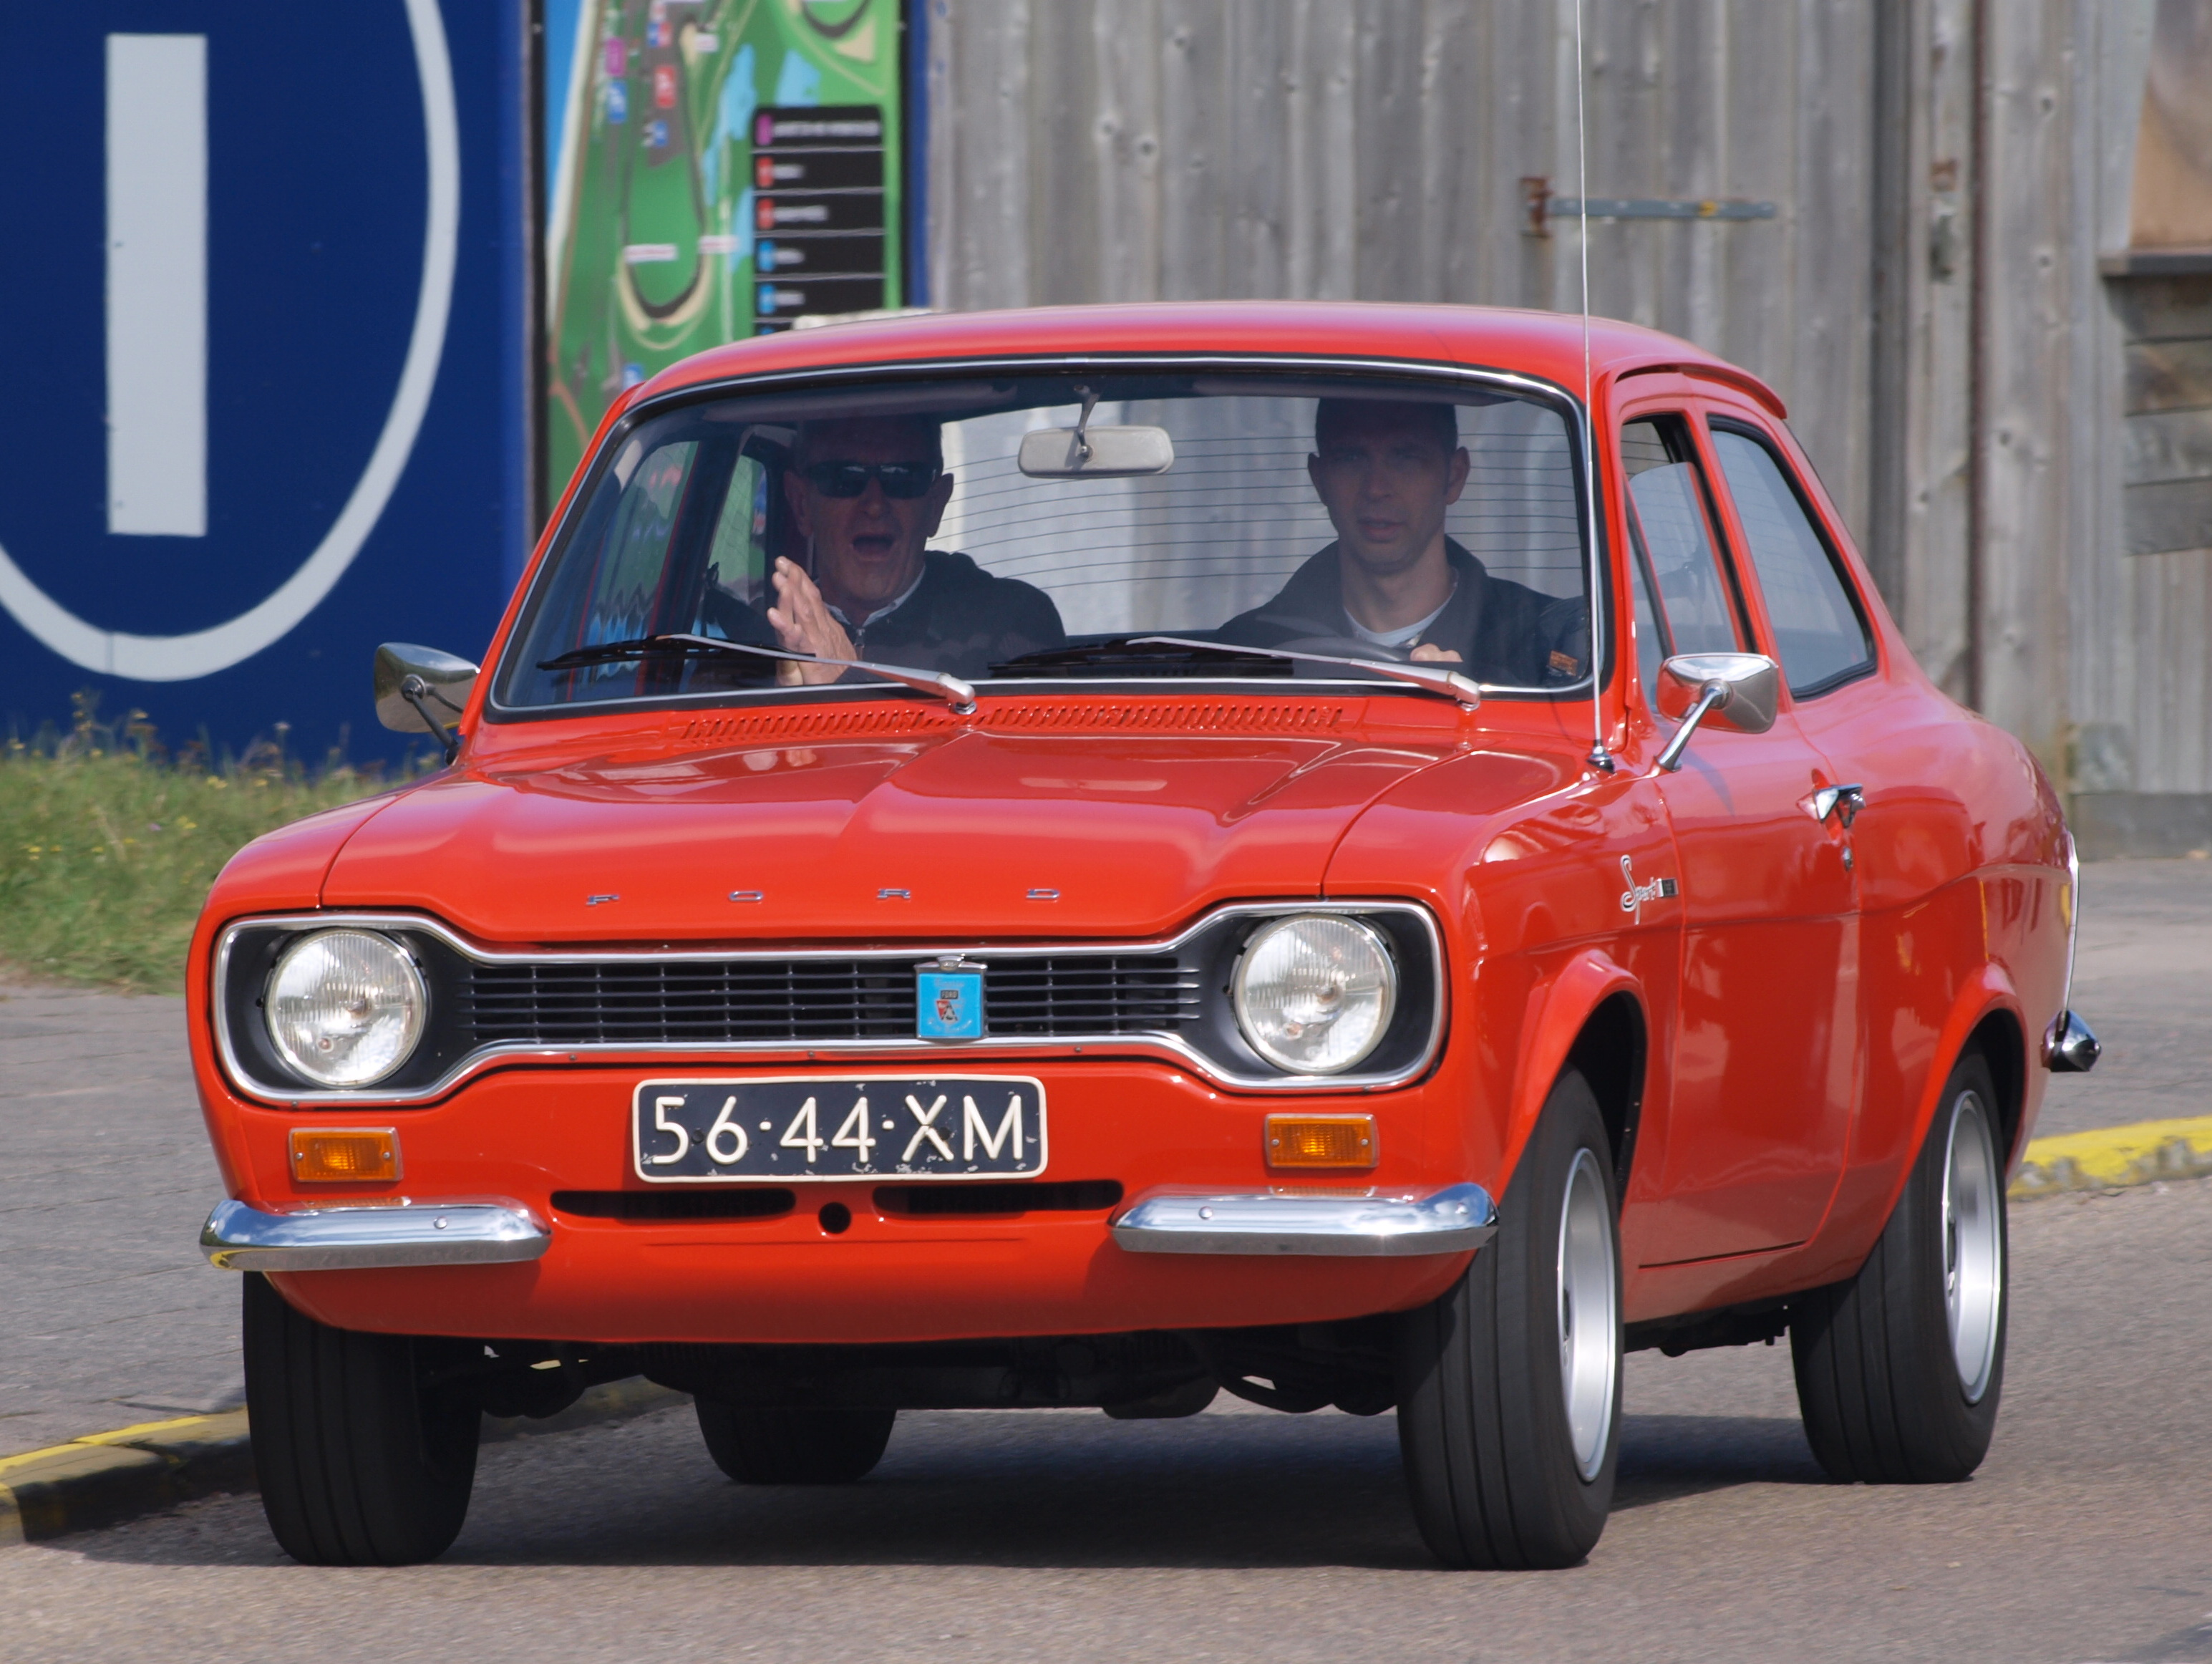 1968 Ford Escort 1300 Sport specifications, carbon